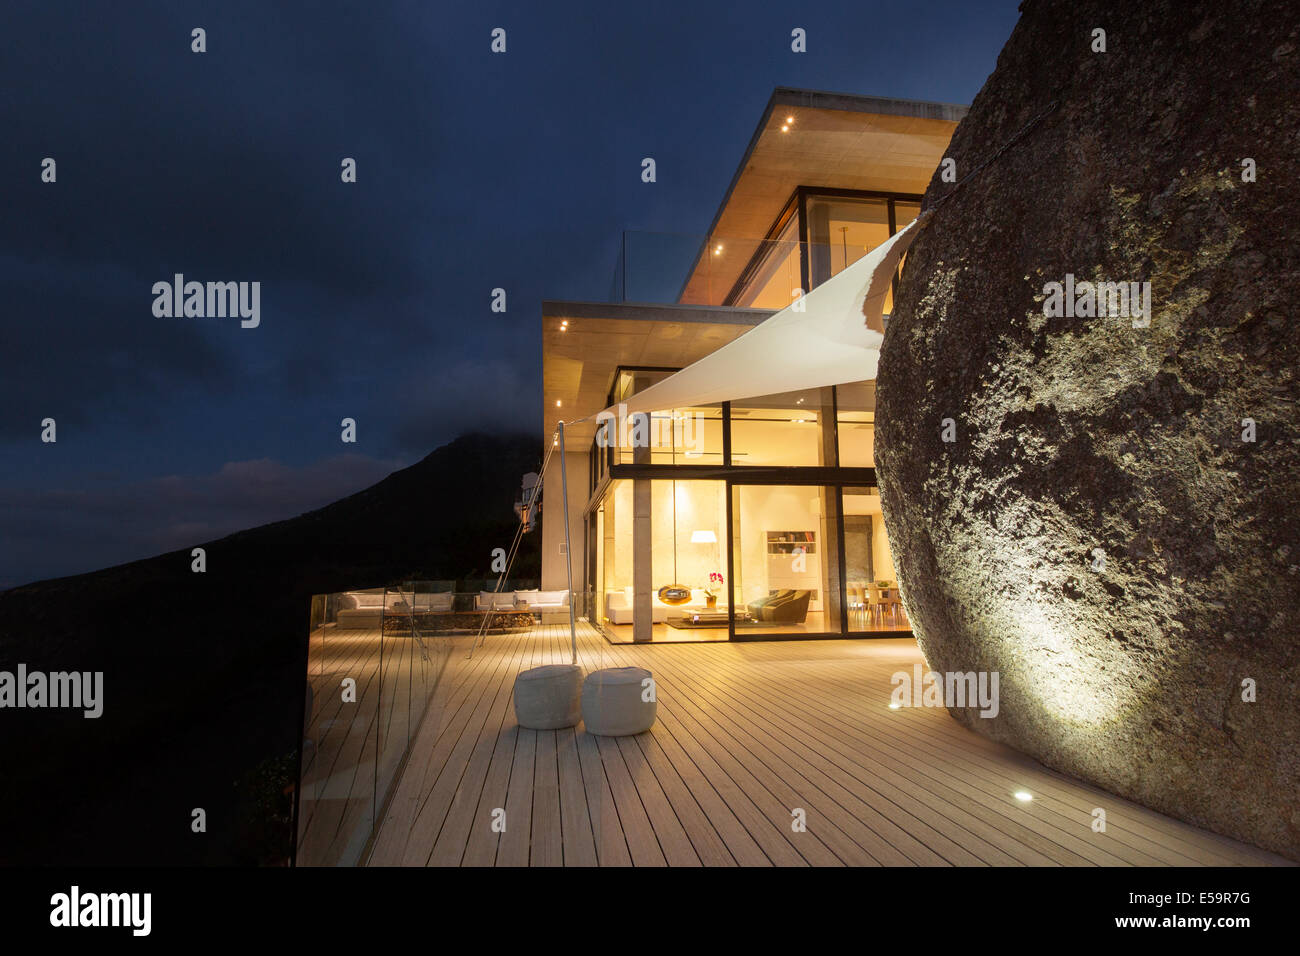 Illuminated modern house with rock feature and balcony - Stock Image